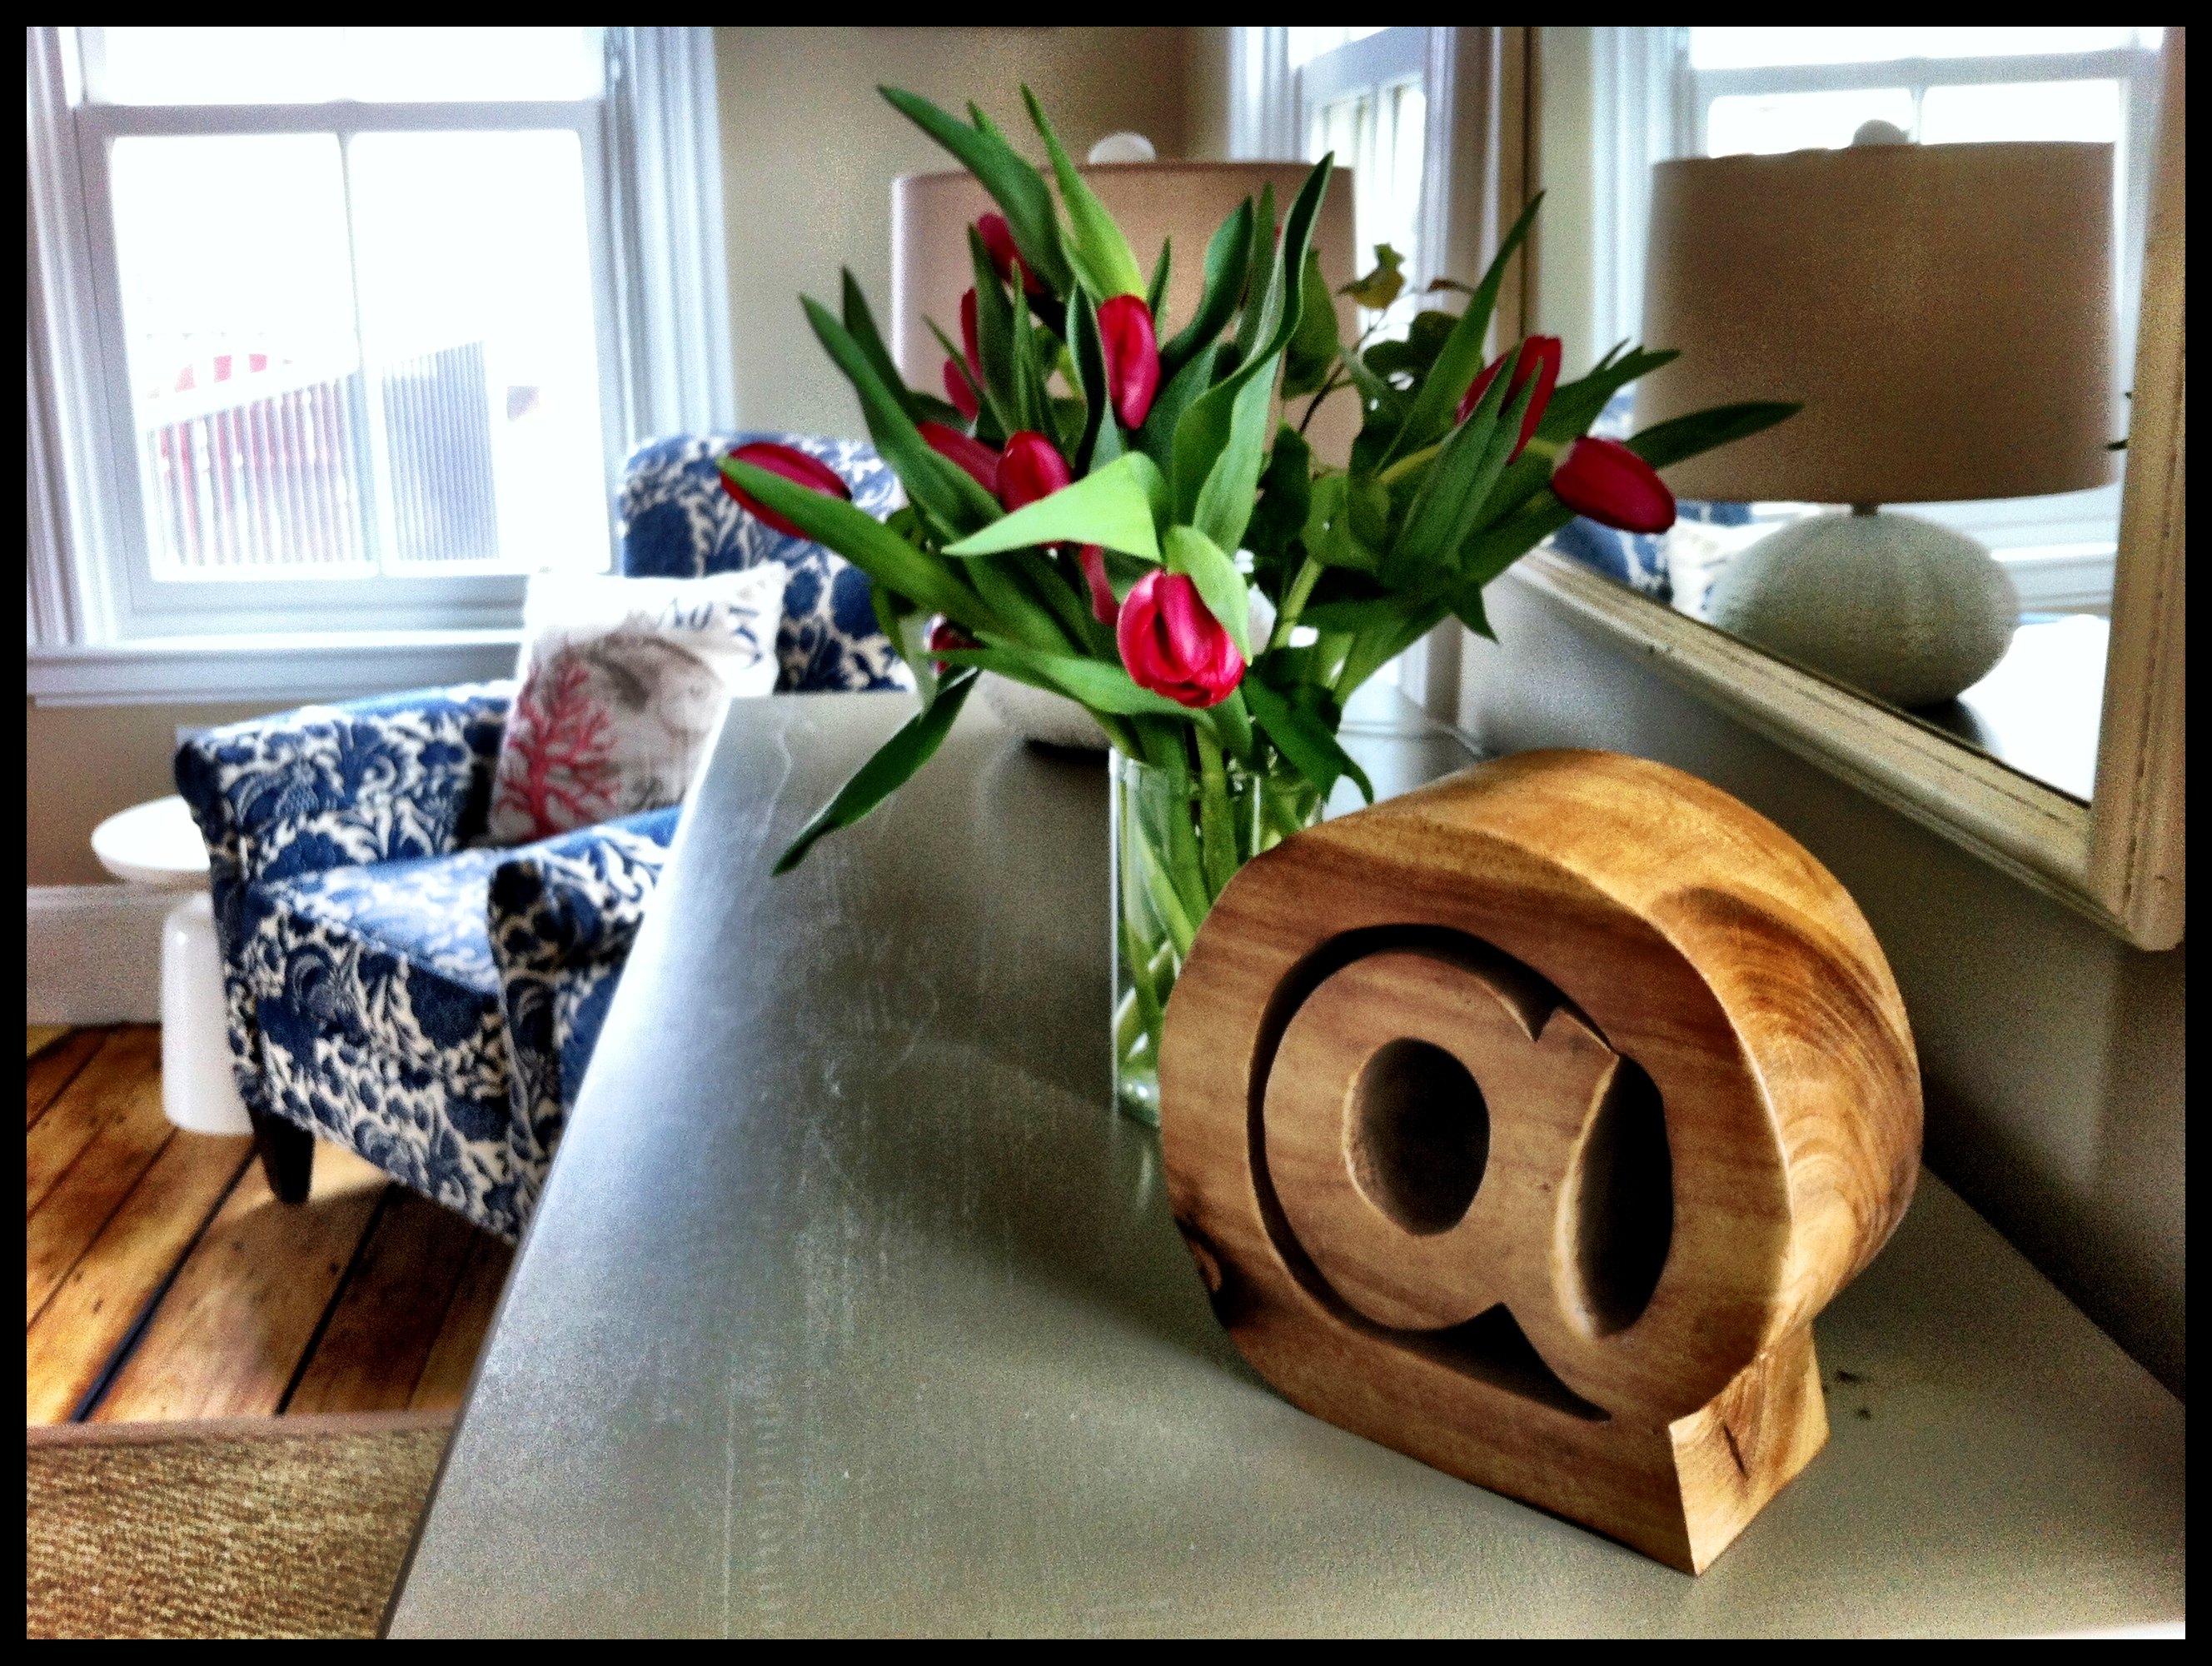 Views of the harbor and a private deck in this sunny corner room at the Woods Hole Inn.